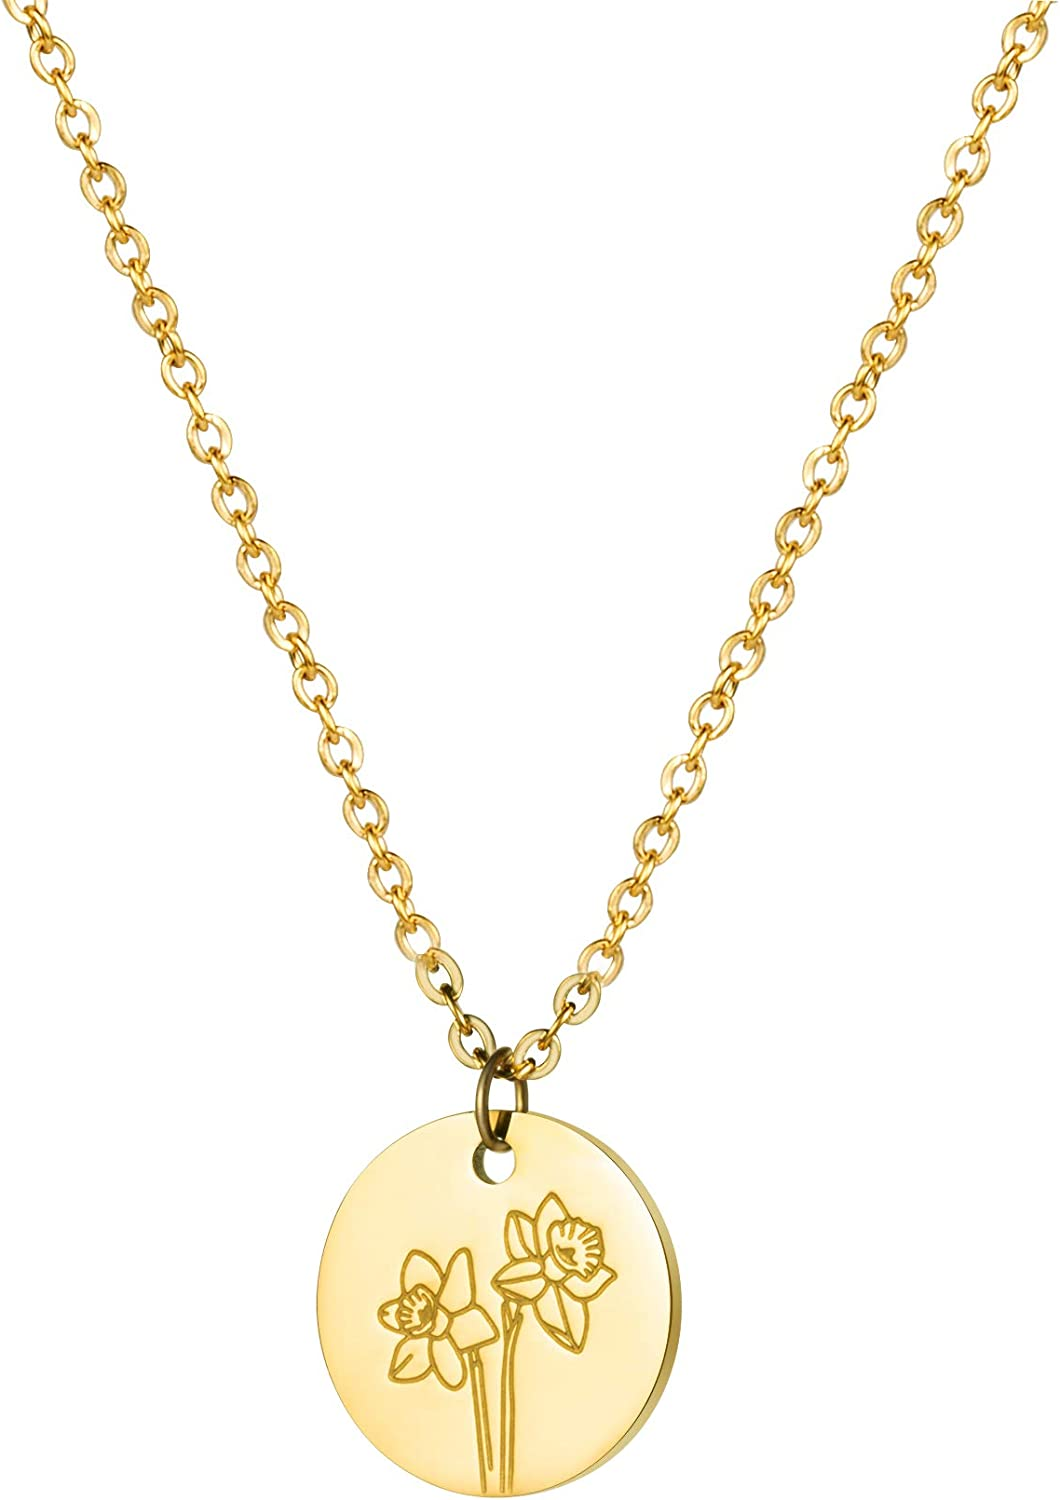 Birth Flower Gifts low-pricing for Women Courier shipping free 18K Gold Pendant Necklace Sp Floral